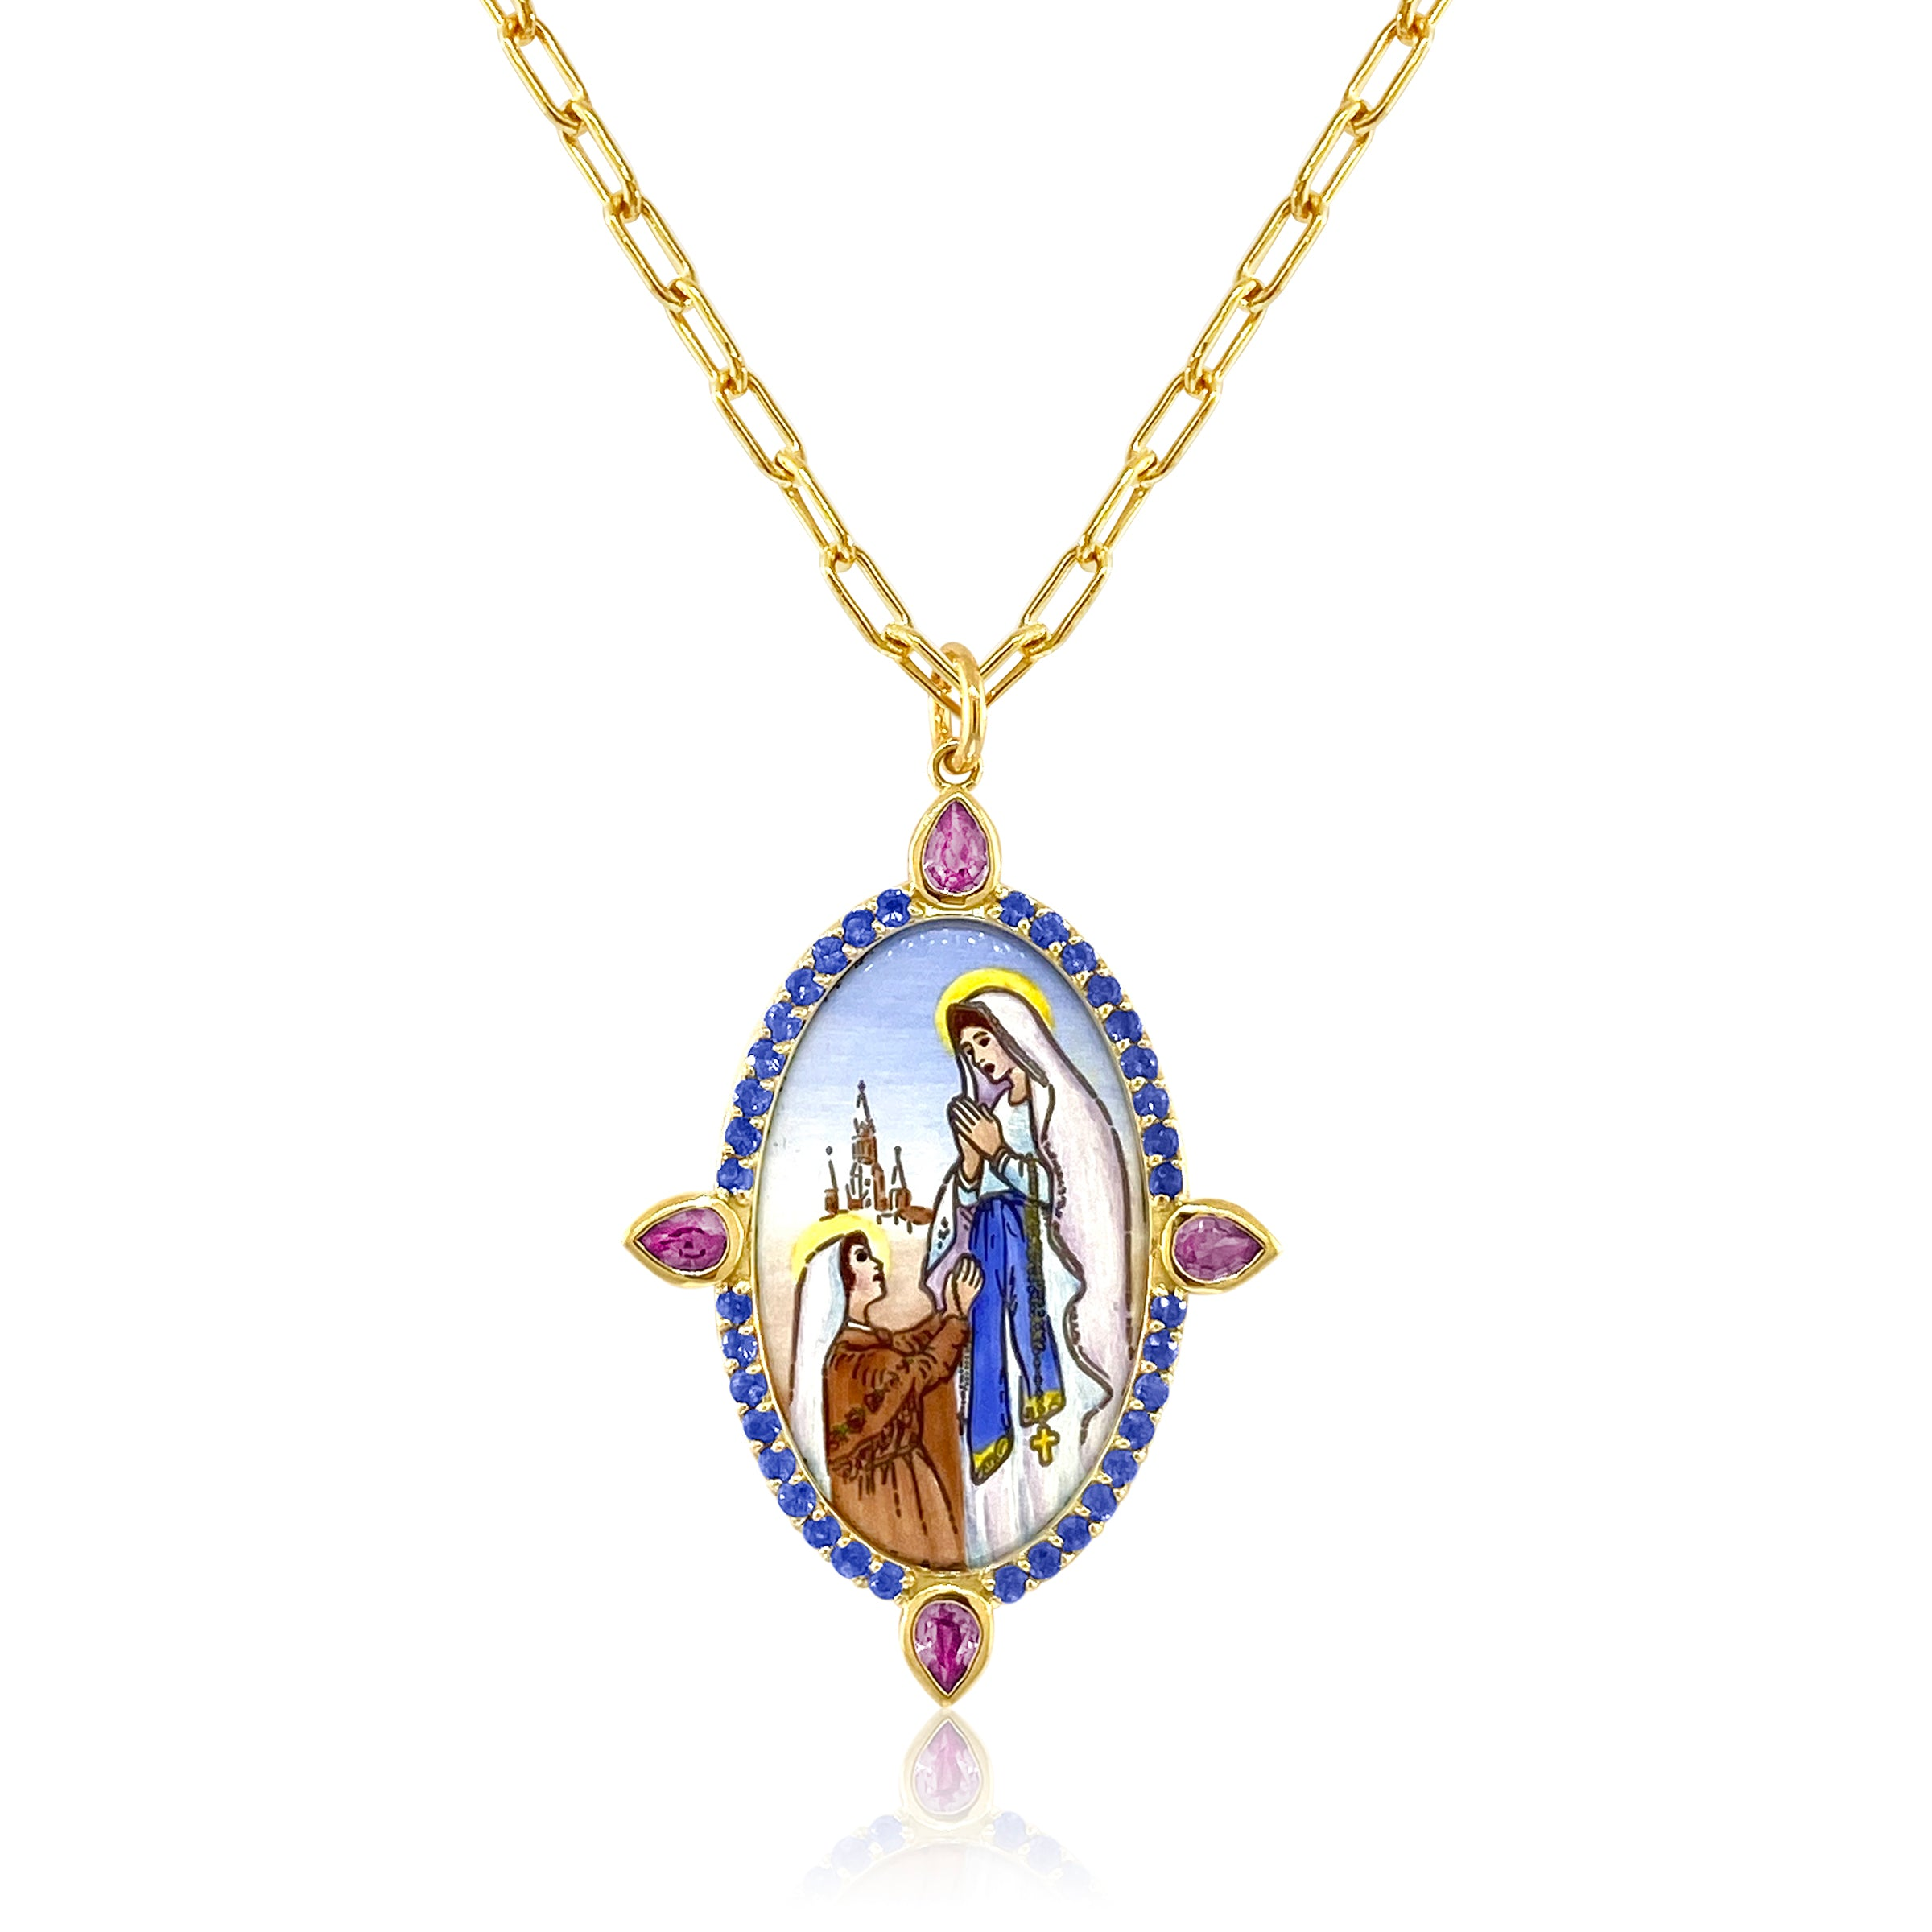 Our Lady of Fatima Pendant